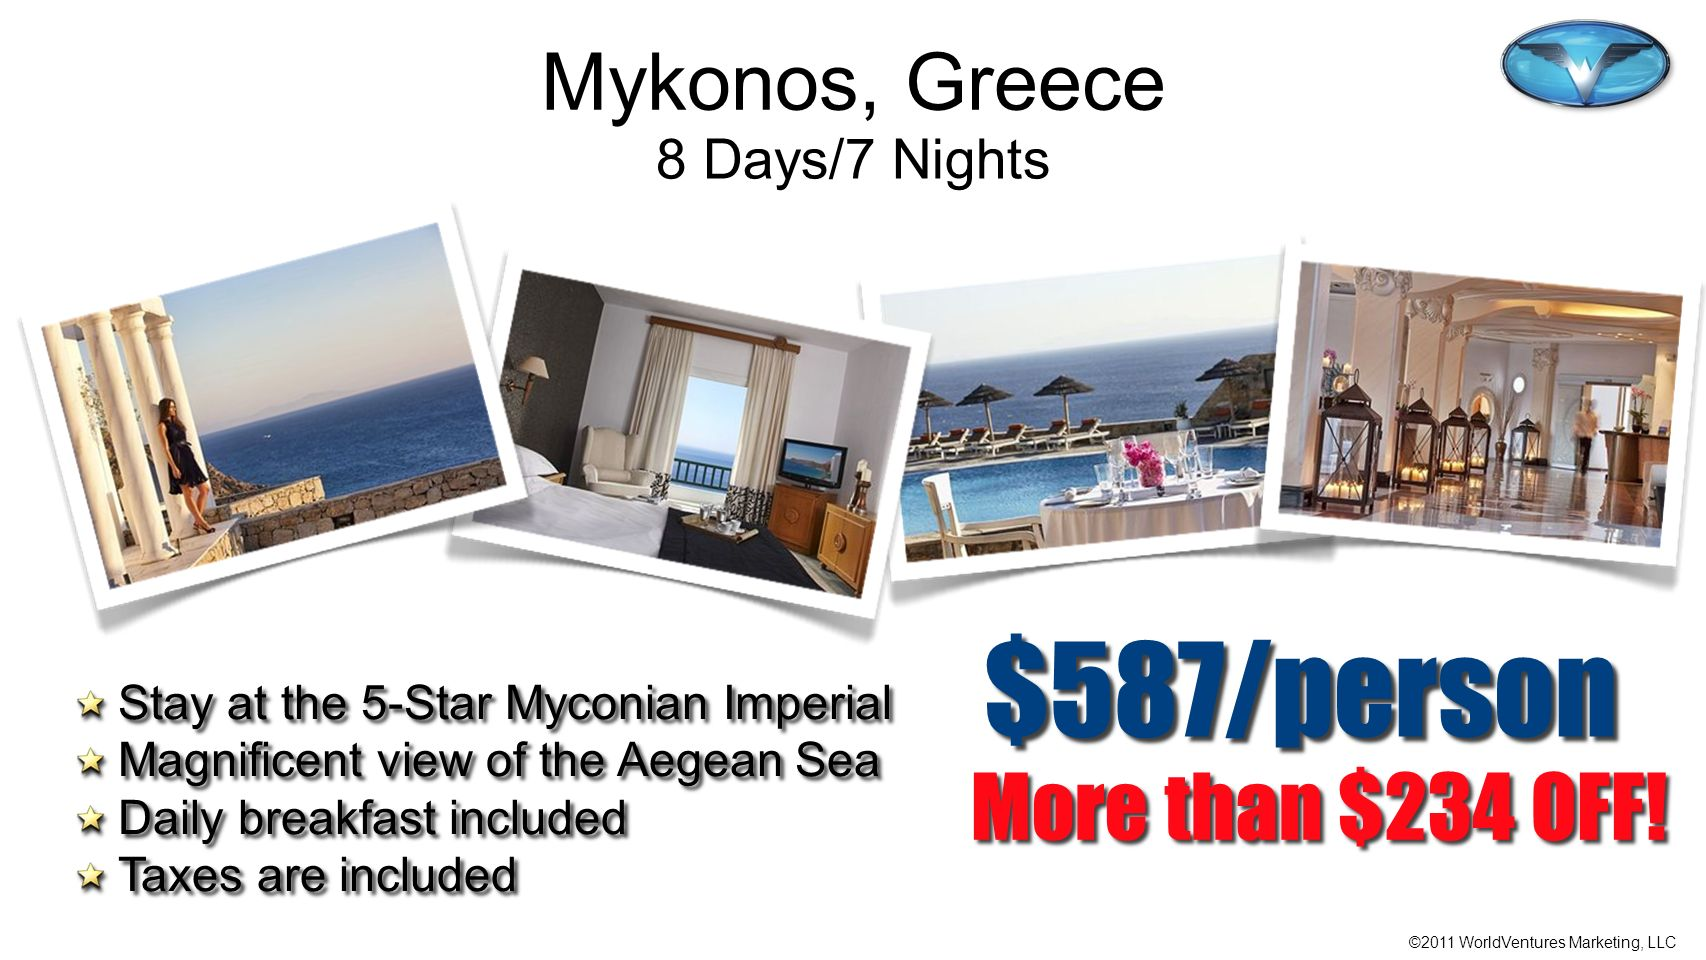 $587/person More than $234 OFF! Mykonos, Greece 8 Days/7 Nights